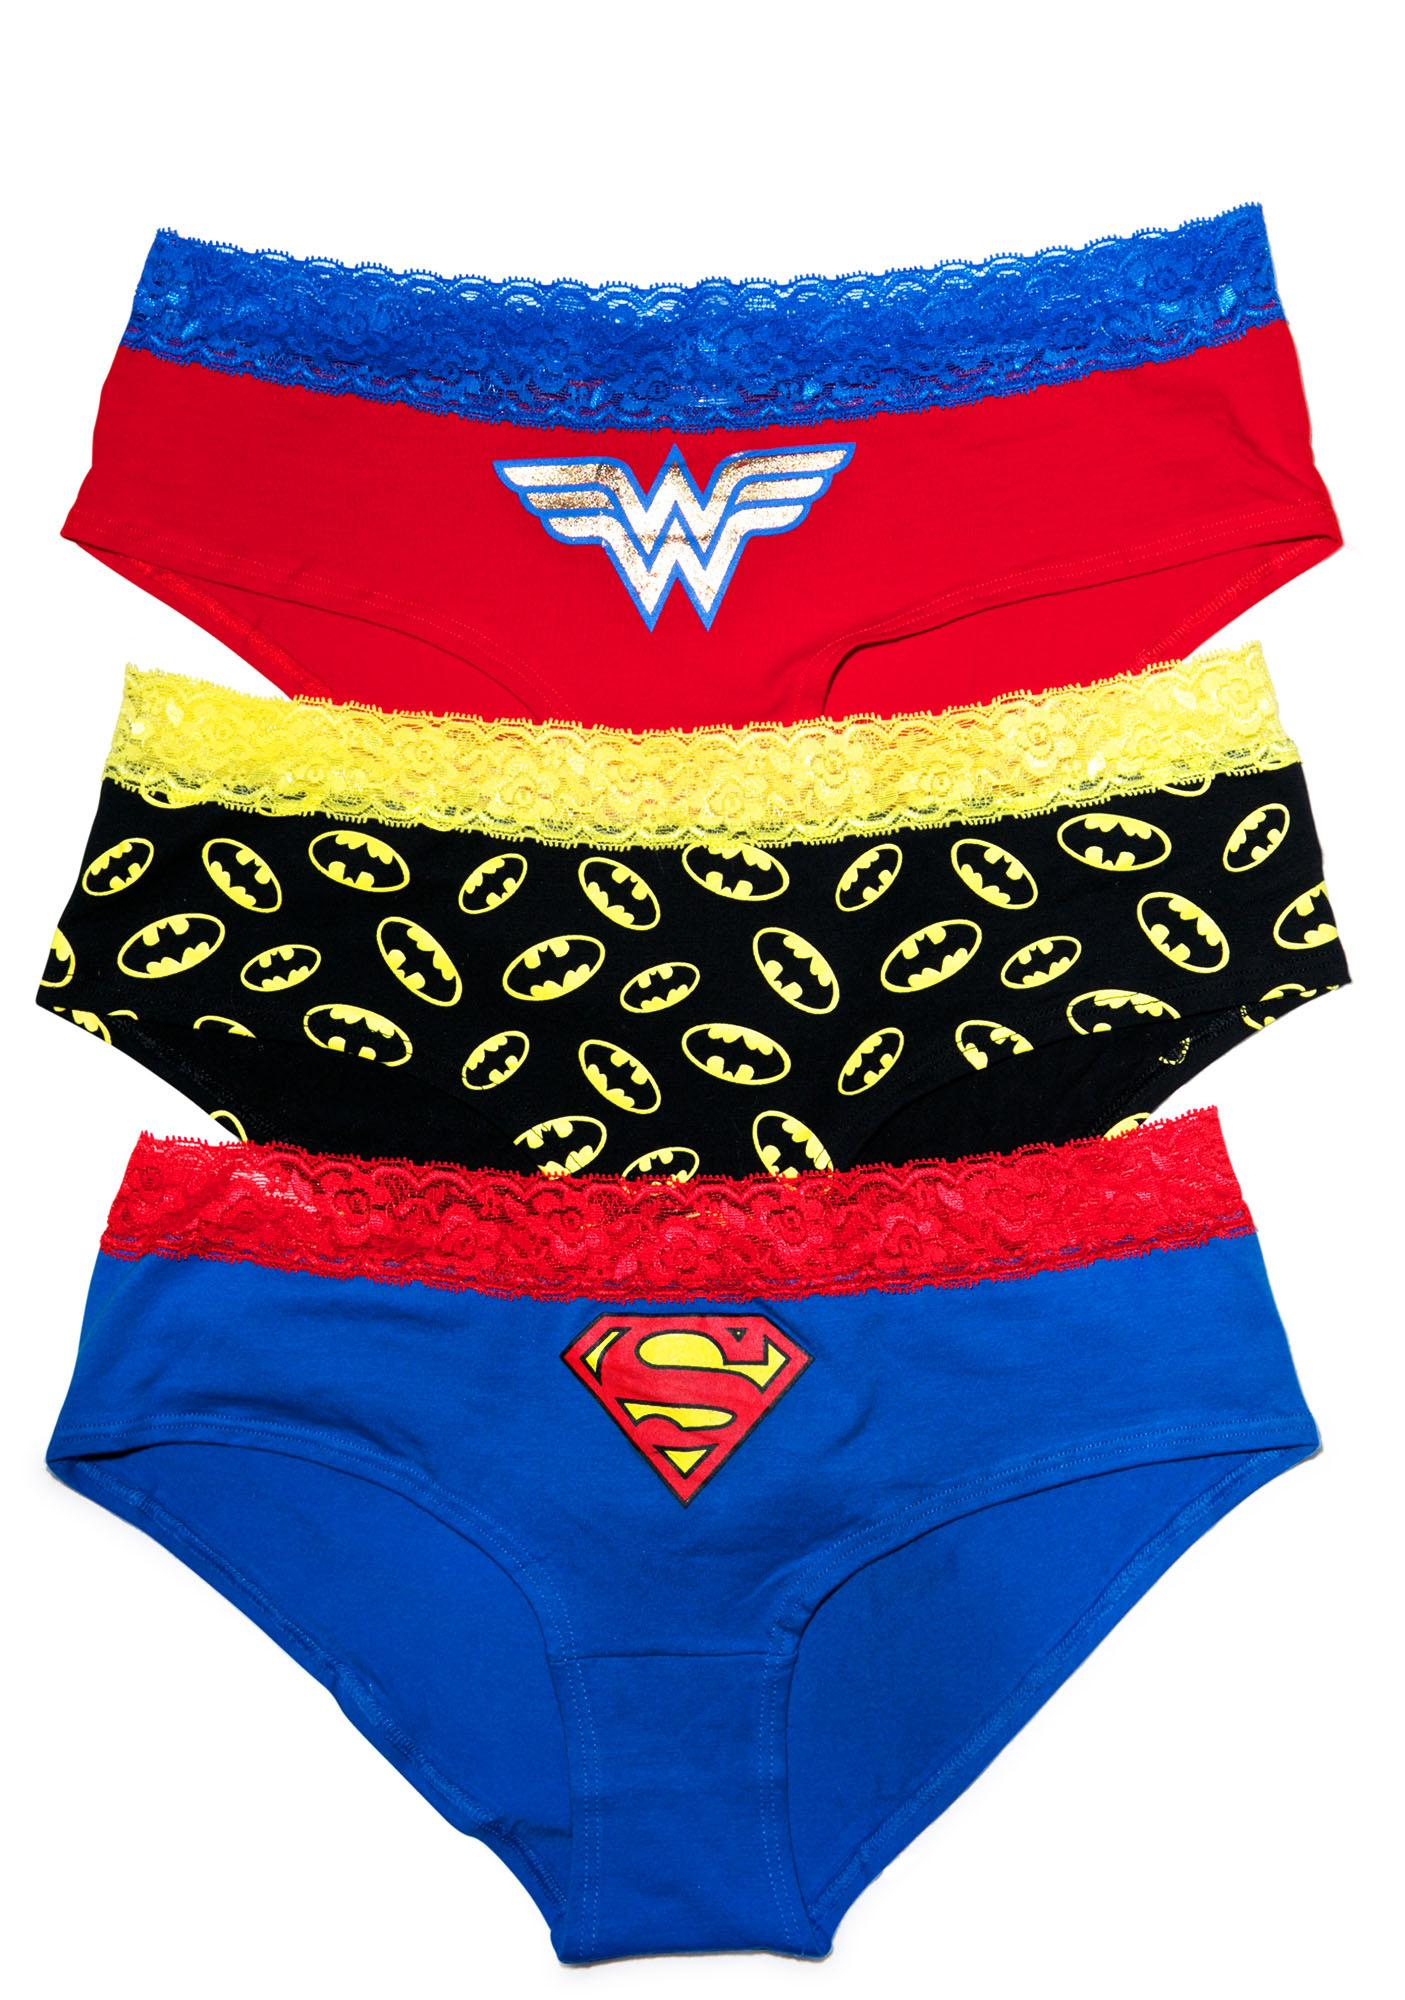 Undergirl Super Girl 3 Pack Underwear